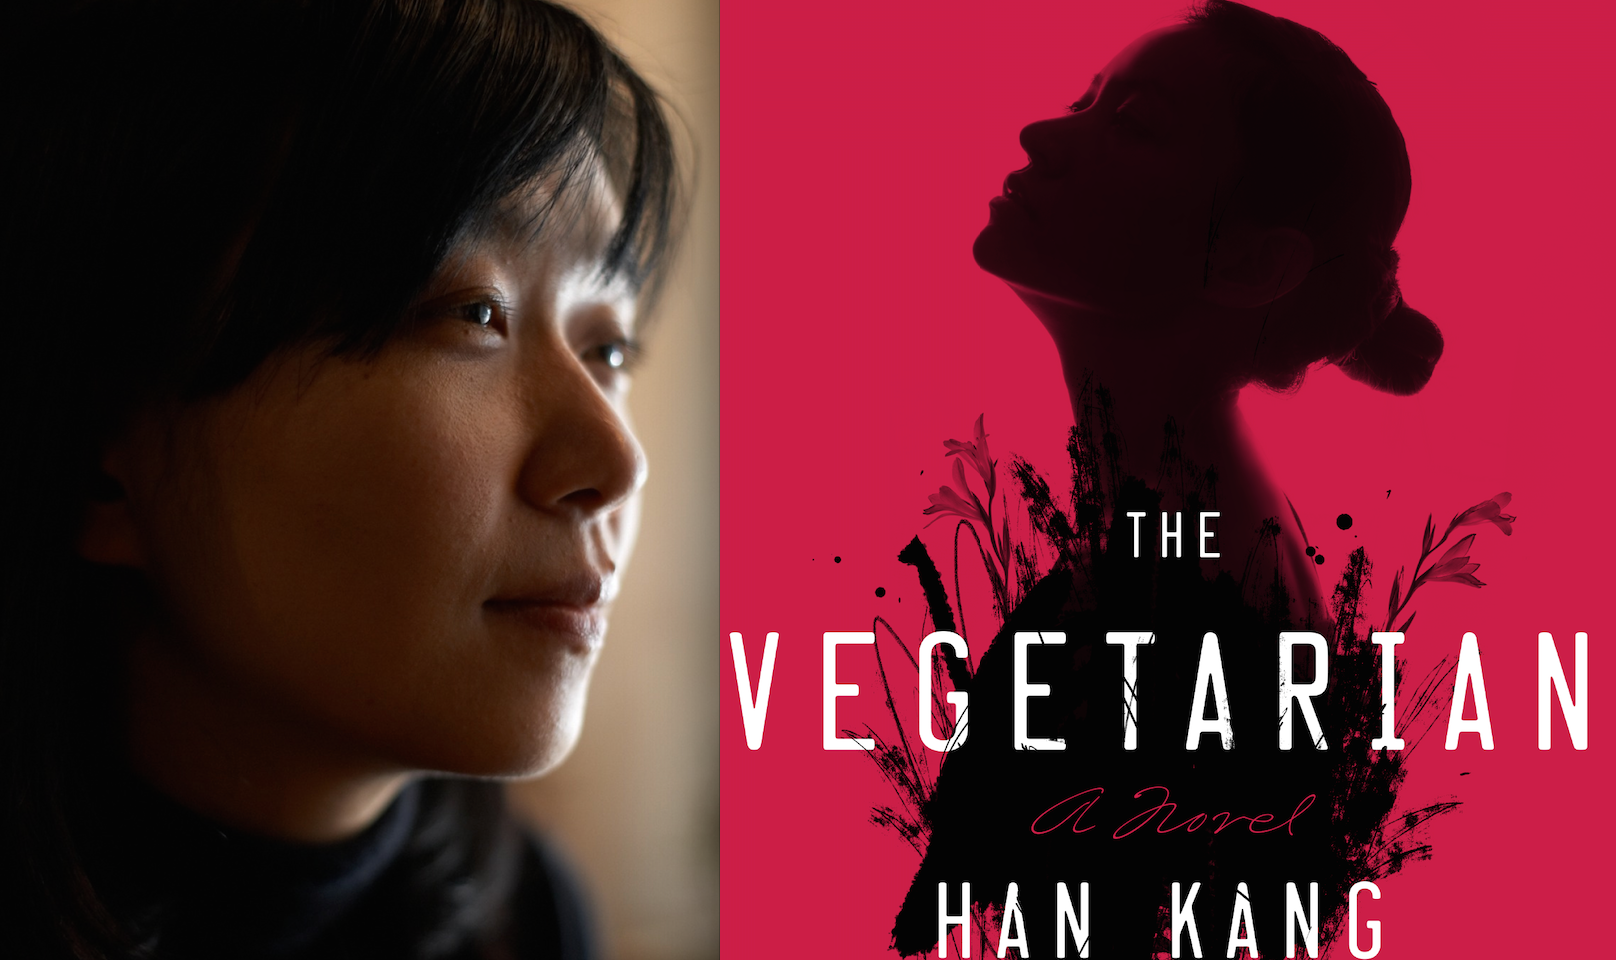 Han Kang, The Vegetarian, vegan novel, vegetarian literature